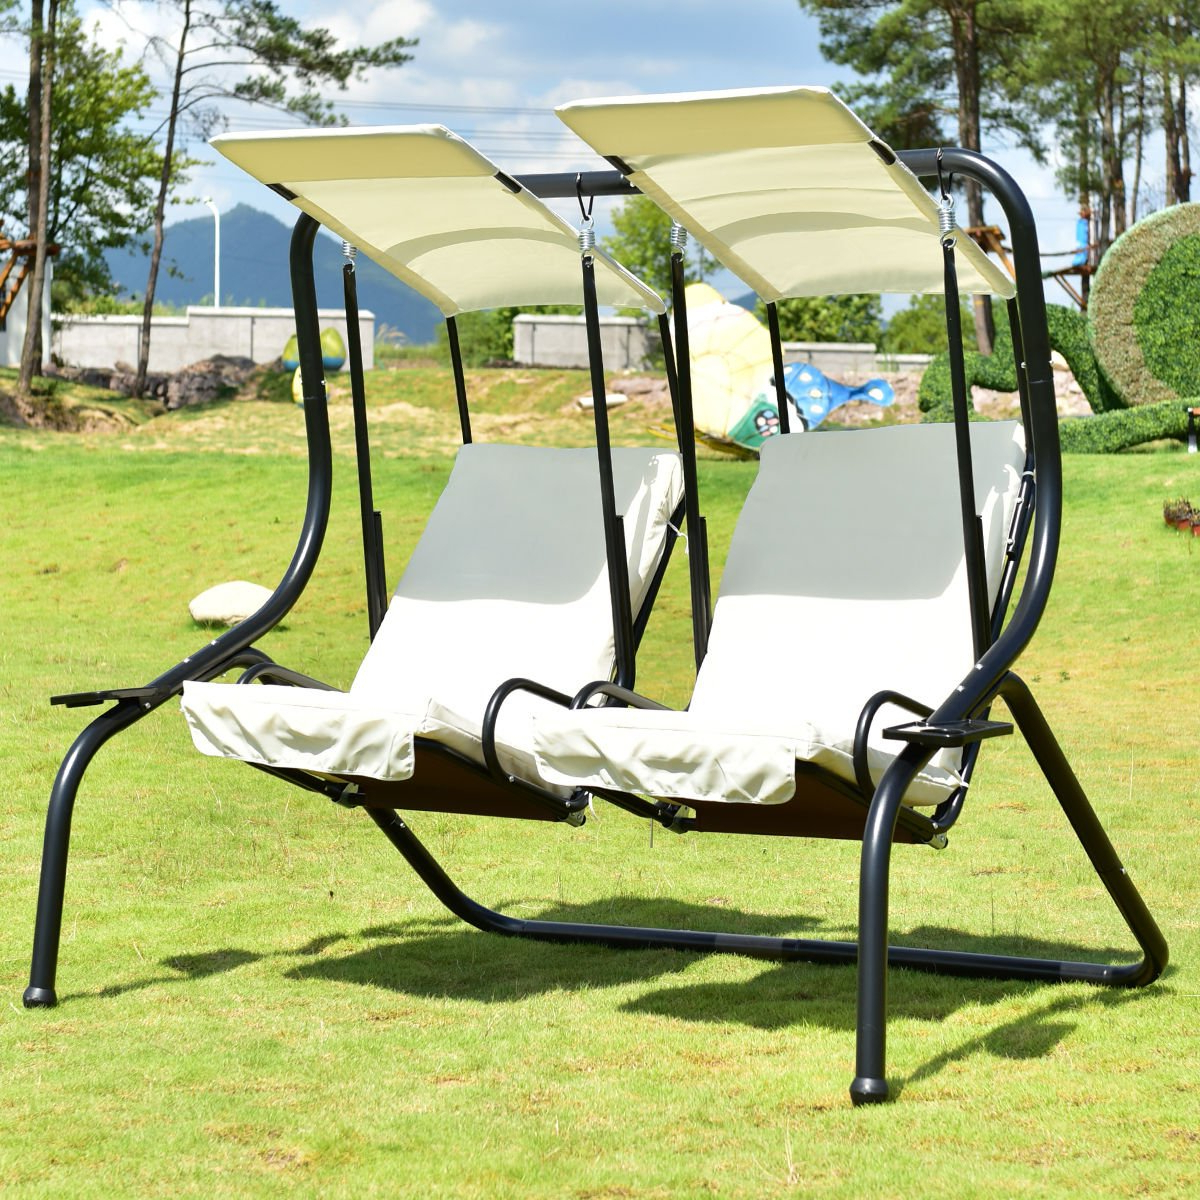 Best And Newest Tangkula 3 Person Patio Swing Glider Outdoor Swing Hammock Regarding Black Outdoor Durable Steel Frame Patio Swing Glider Bench Chairs (View 1 of 25)